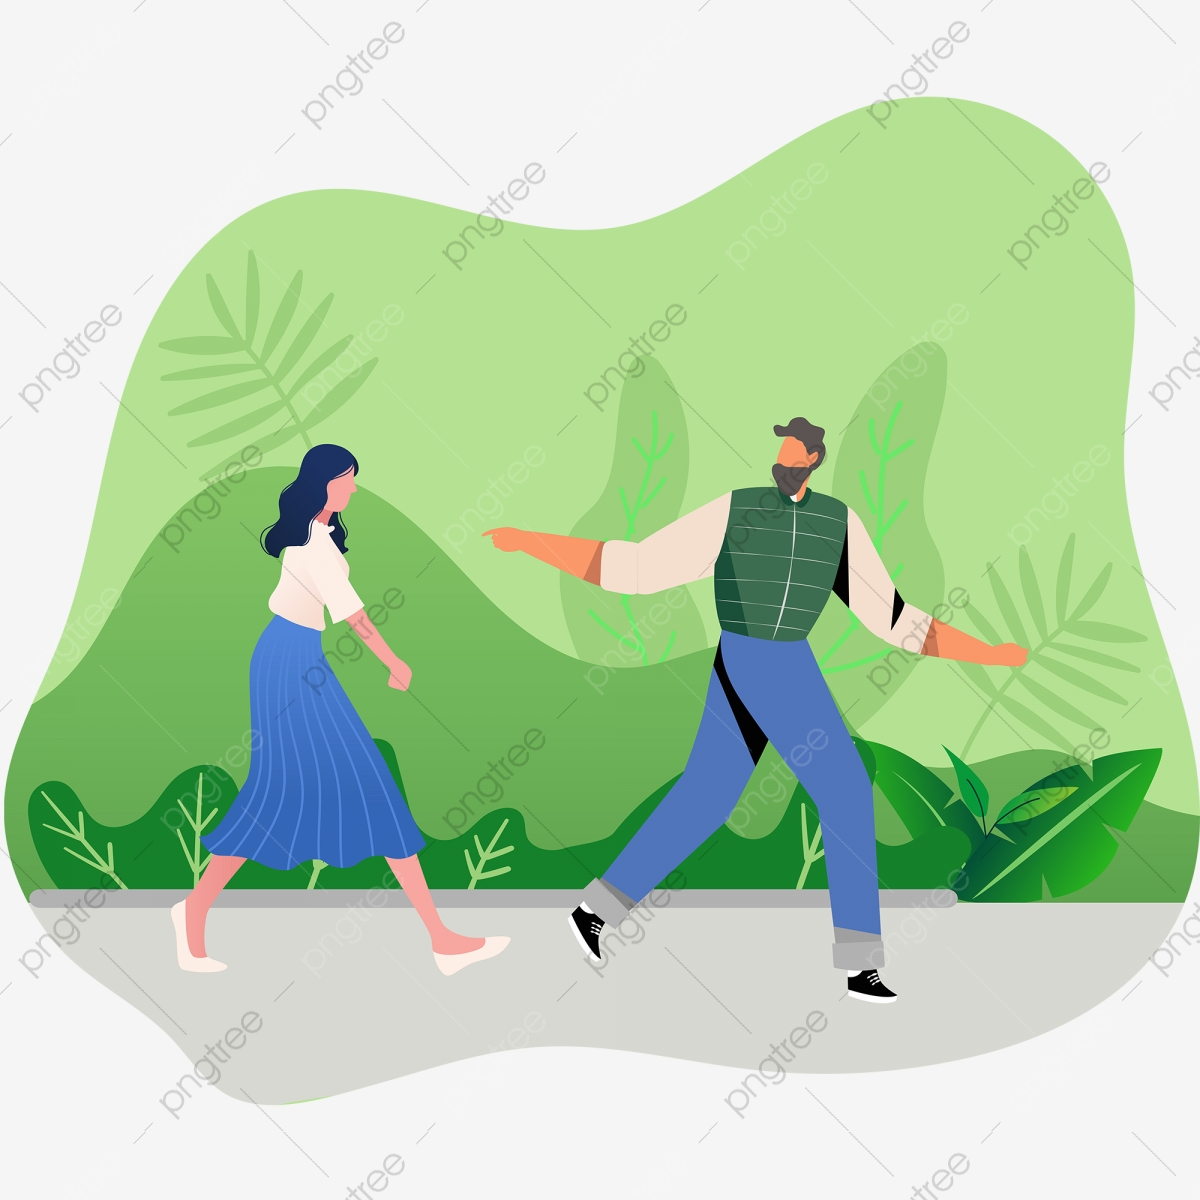 illustration wind couple dating park walk vector elements illustration walk park png and vector with transparent background for free download https pngtree com freepng illustration wind couple dating park walk vector elements 4384059 html